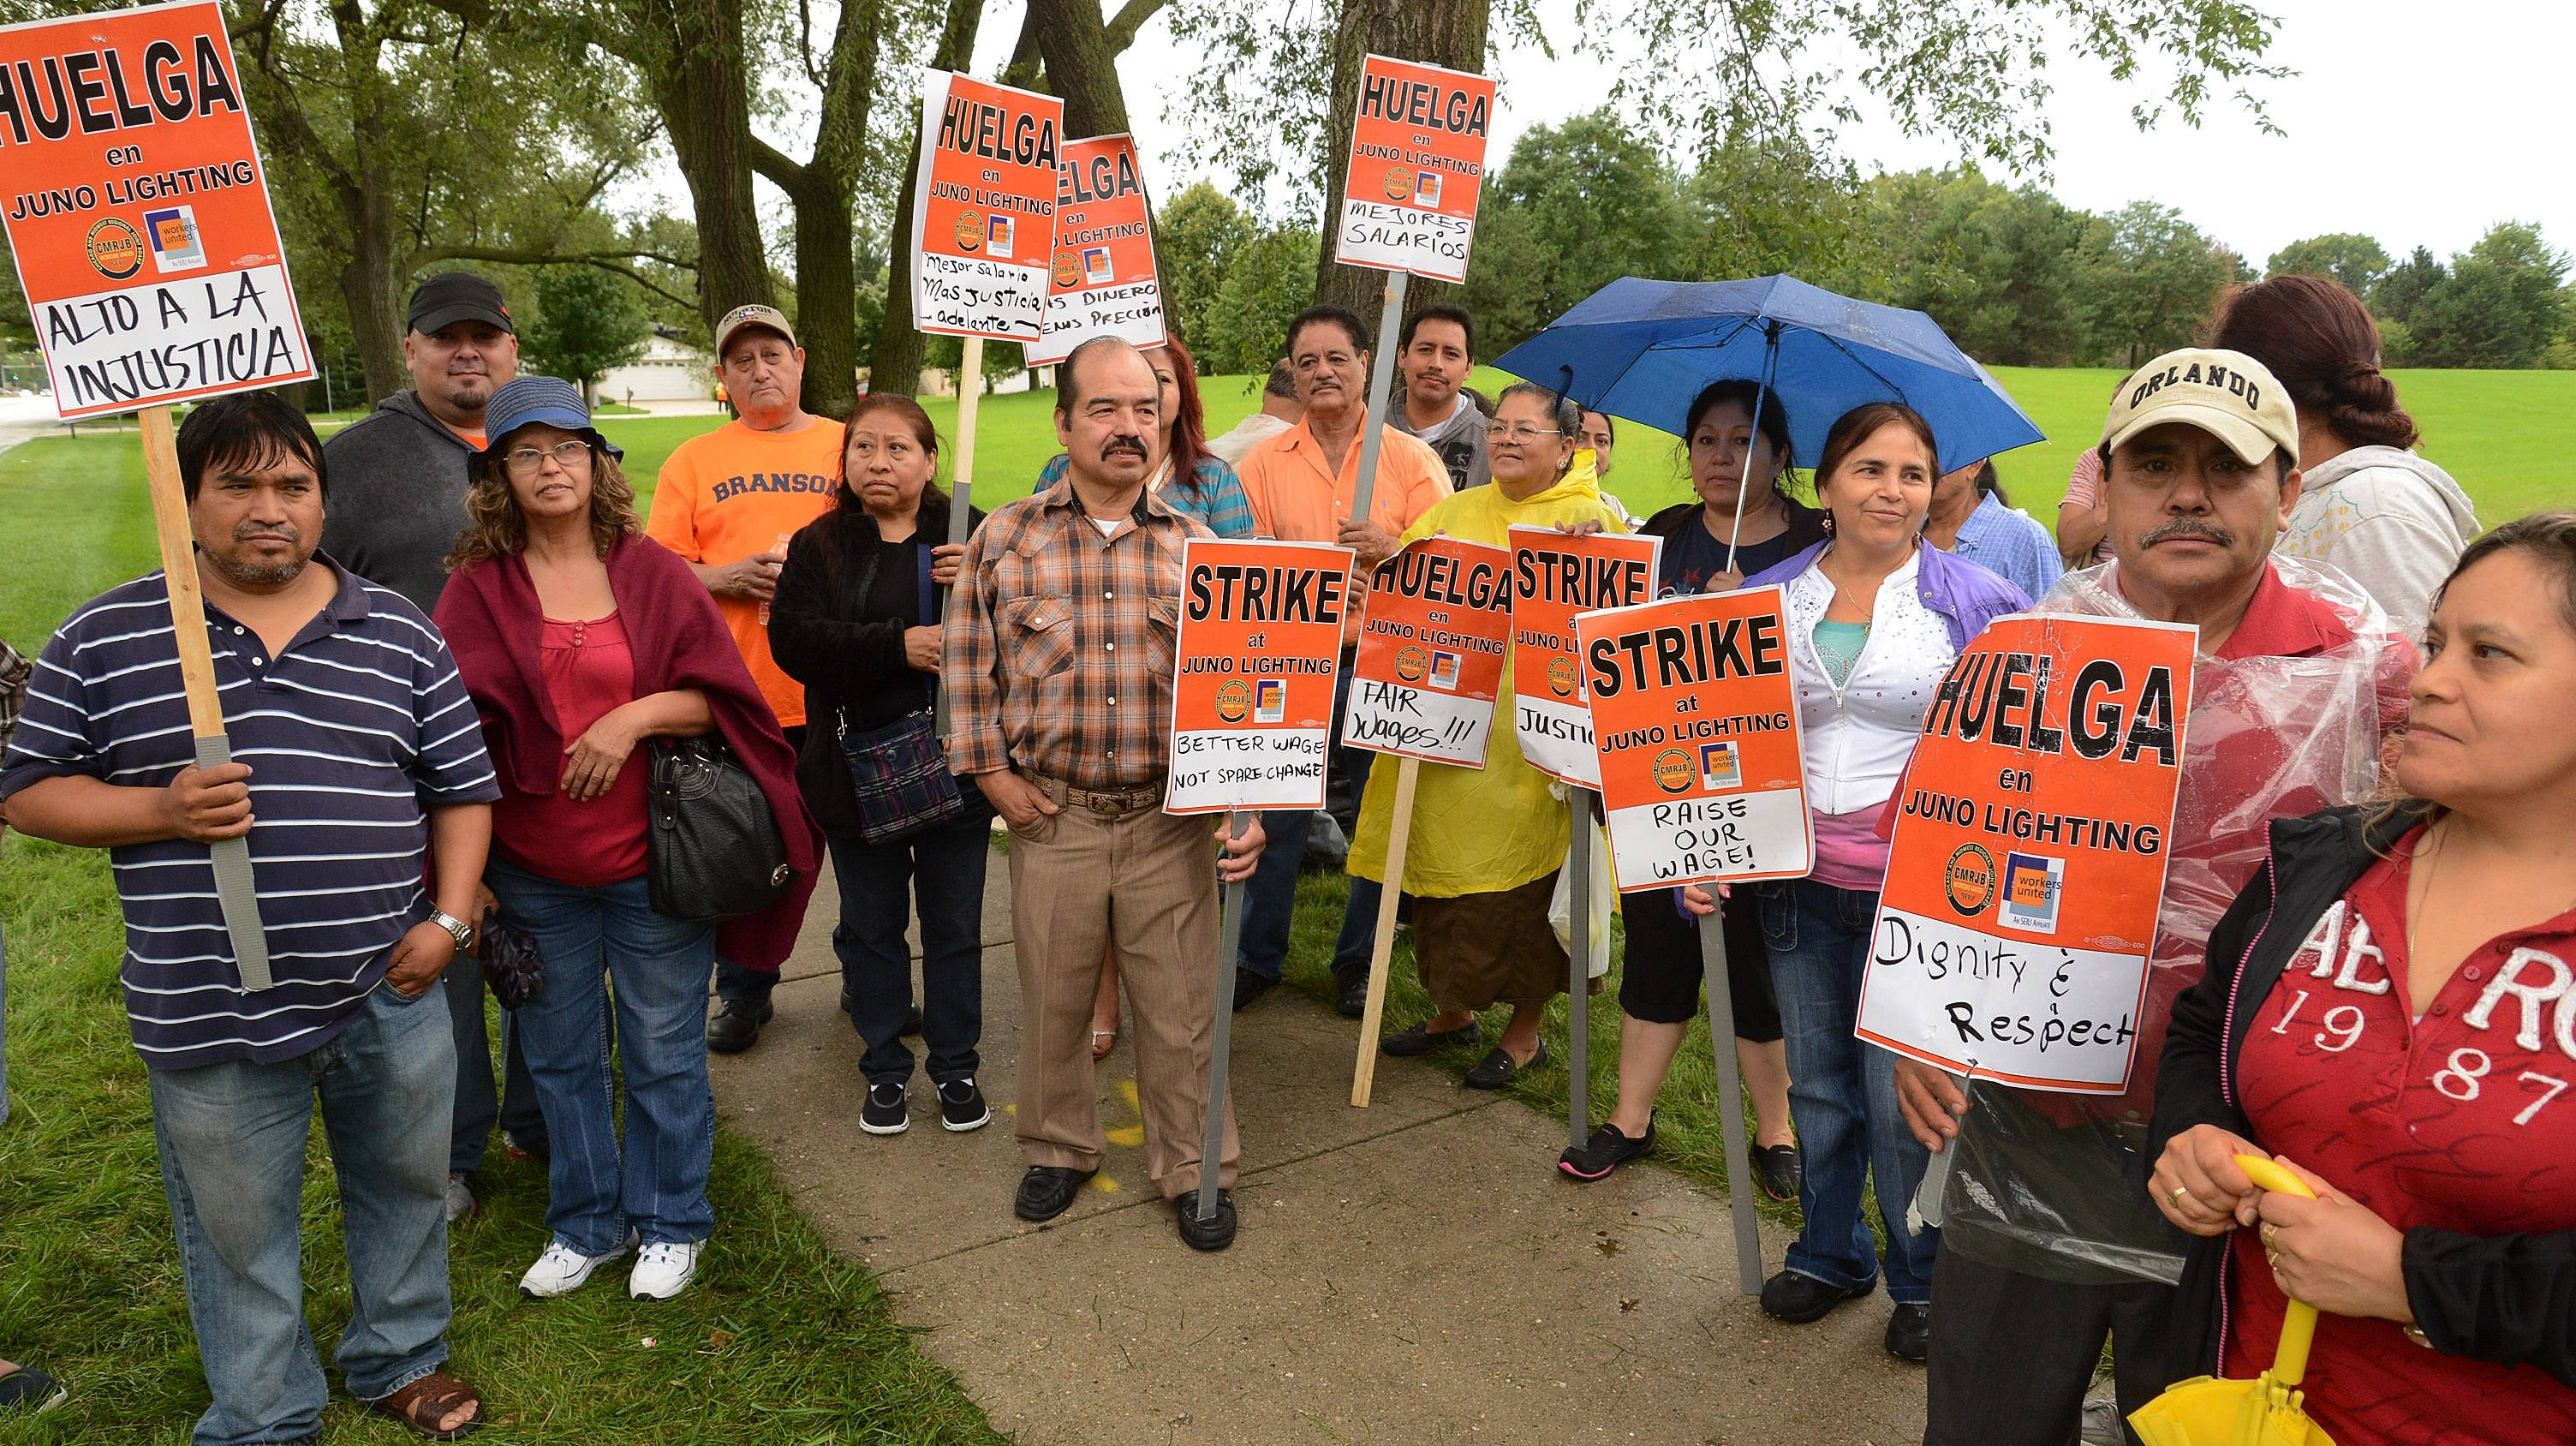 A group of workers at Juno Lighting Group in Des Plaines continued their strike Thursday, in protest of what they say are meager wage increases being offered by the company.